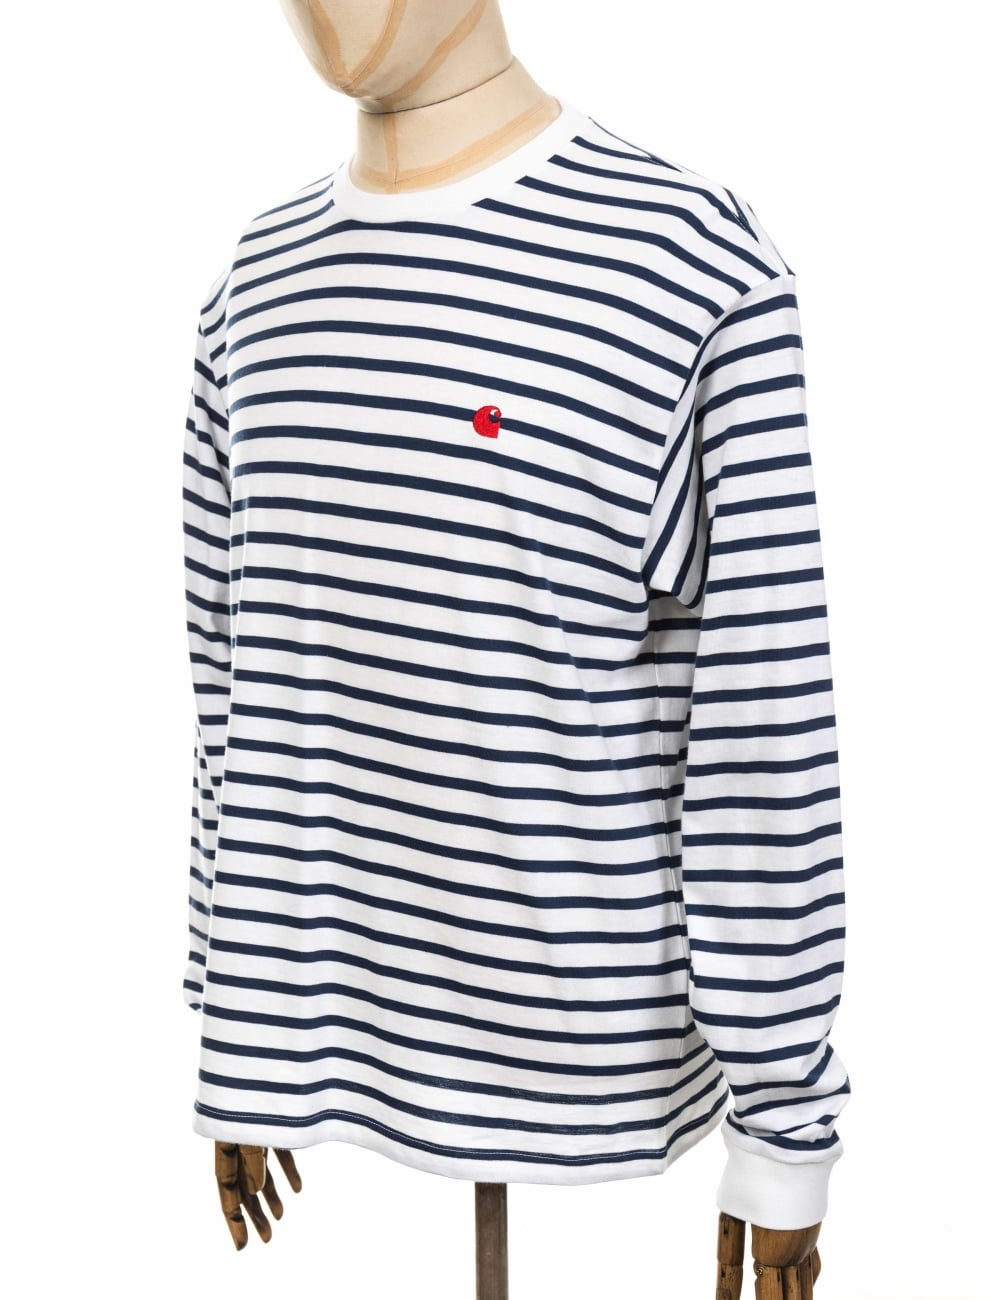 bcab06c875a9 Carhartt WIP L/S Champ Tee - Blue/White/Goji - Clothing from Fat ...